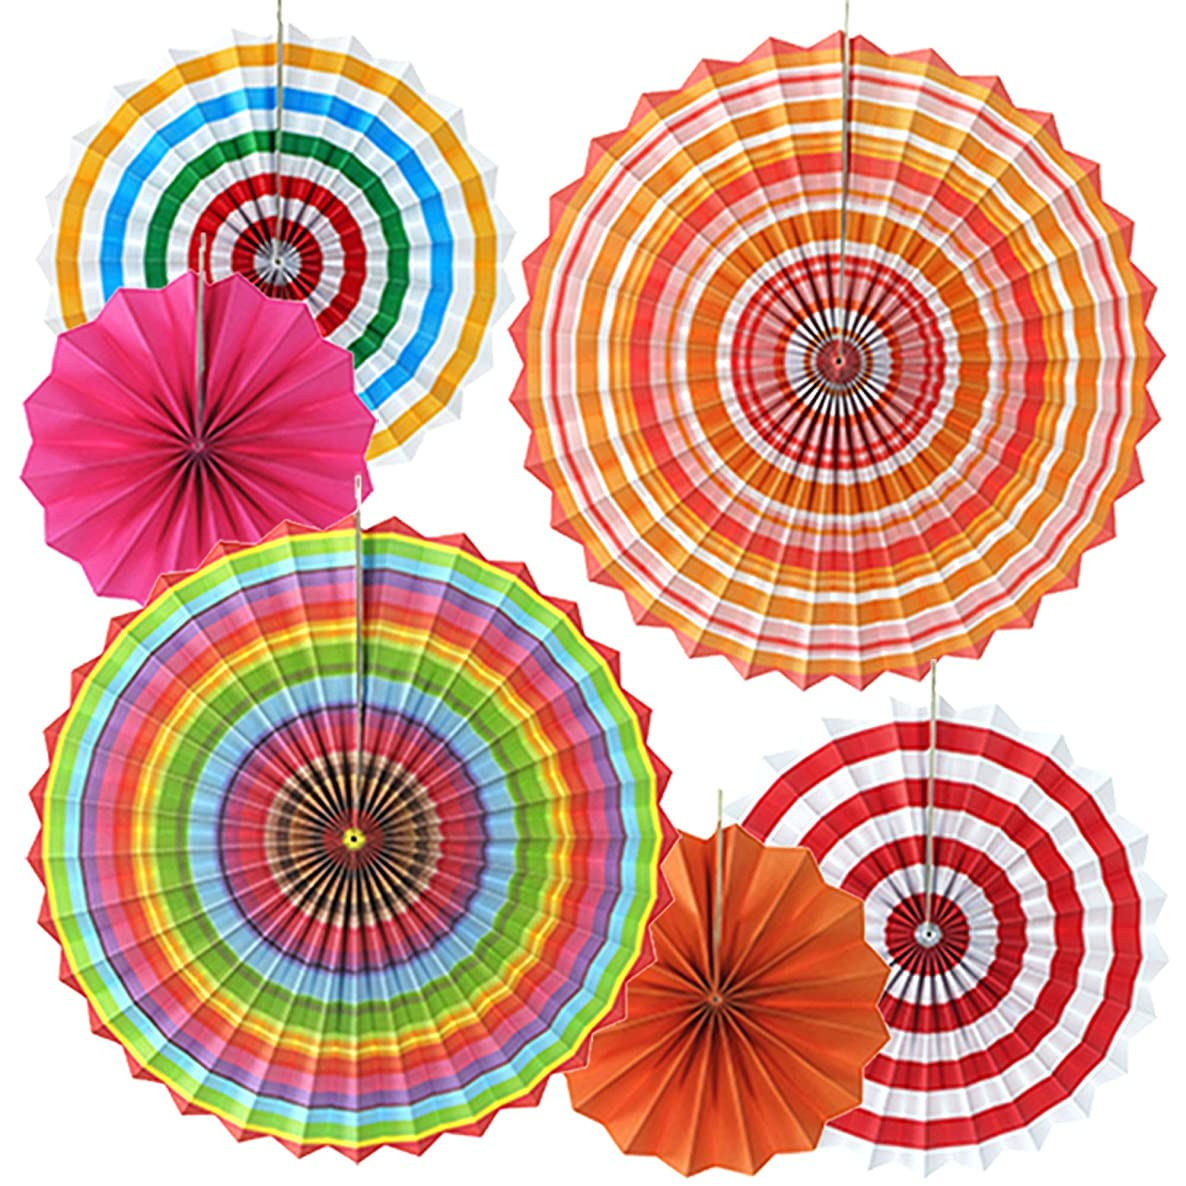 OMyTea Hanging Paper Fans Decorations Kit for Wall - Set of 6 Circle Rosettes Tissue Paper Fans Bulk for Party Favors, Wedding, Birthday, Festival, Christmas, Events, Home Decor (Rainbow 2)